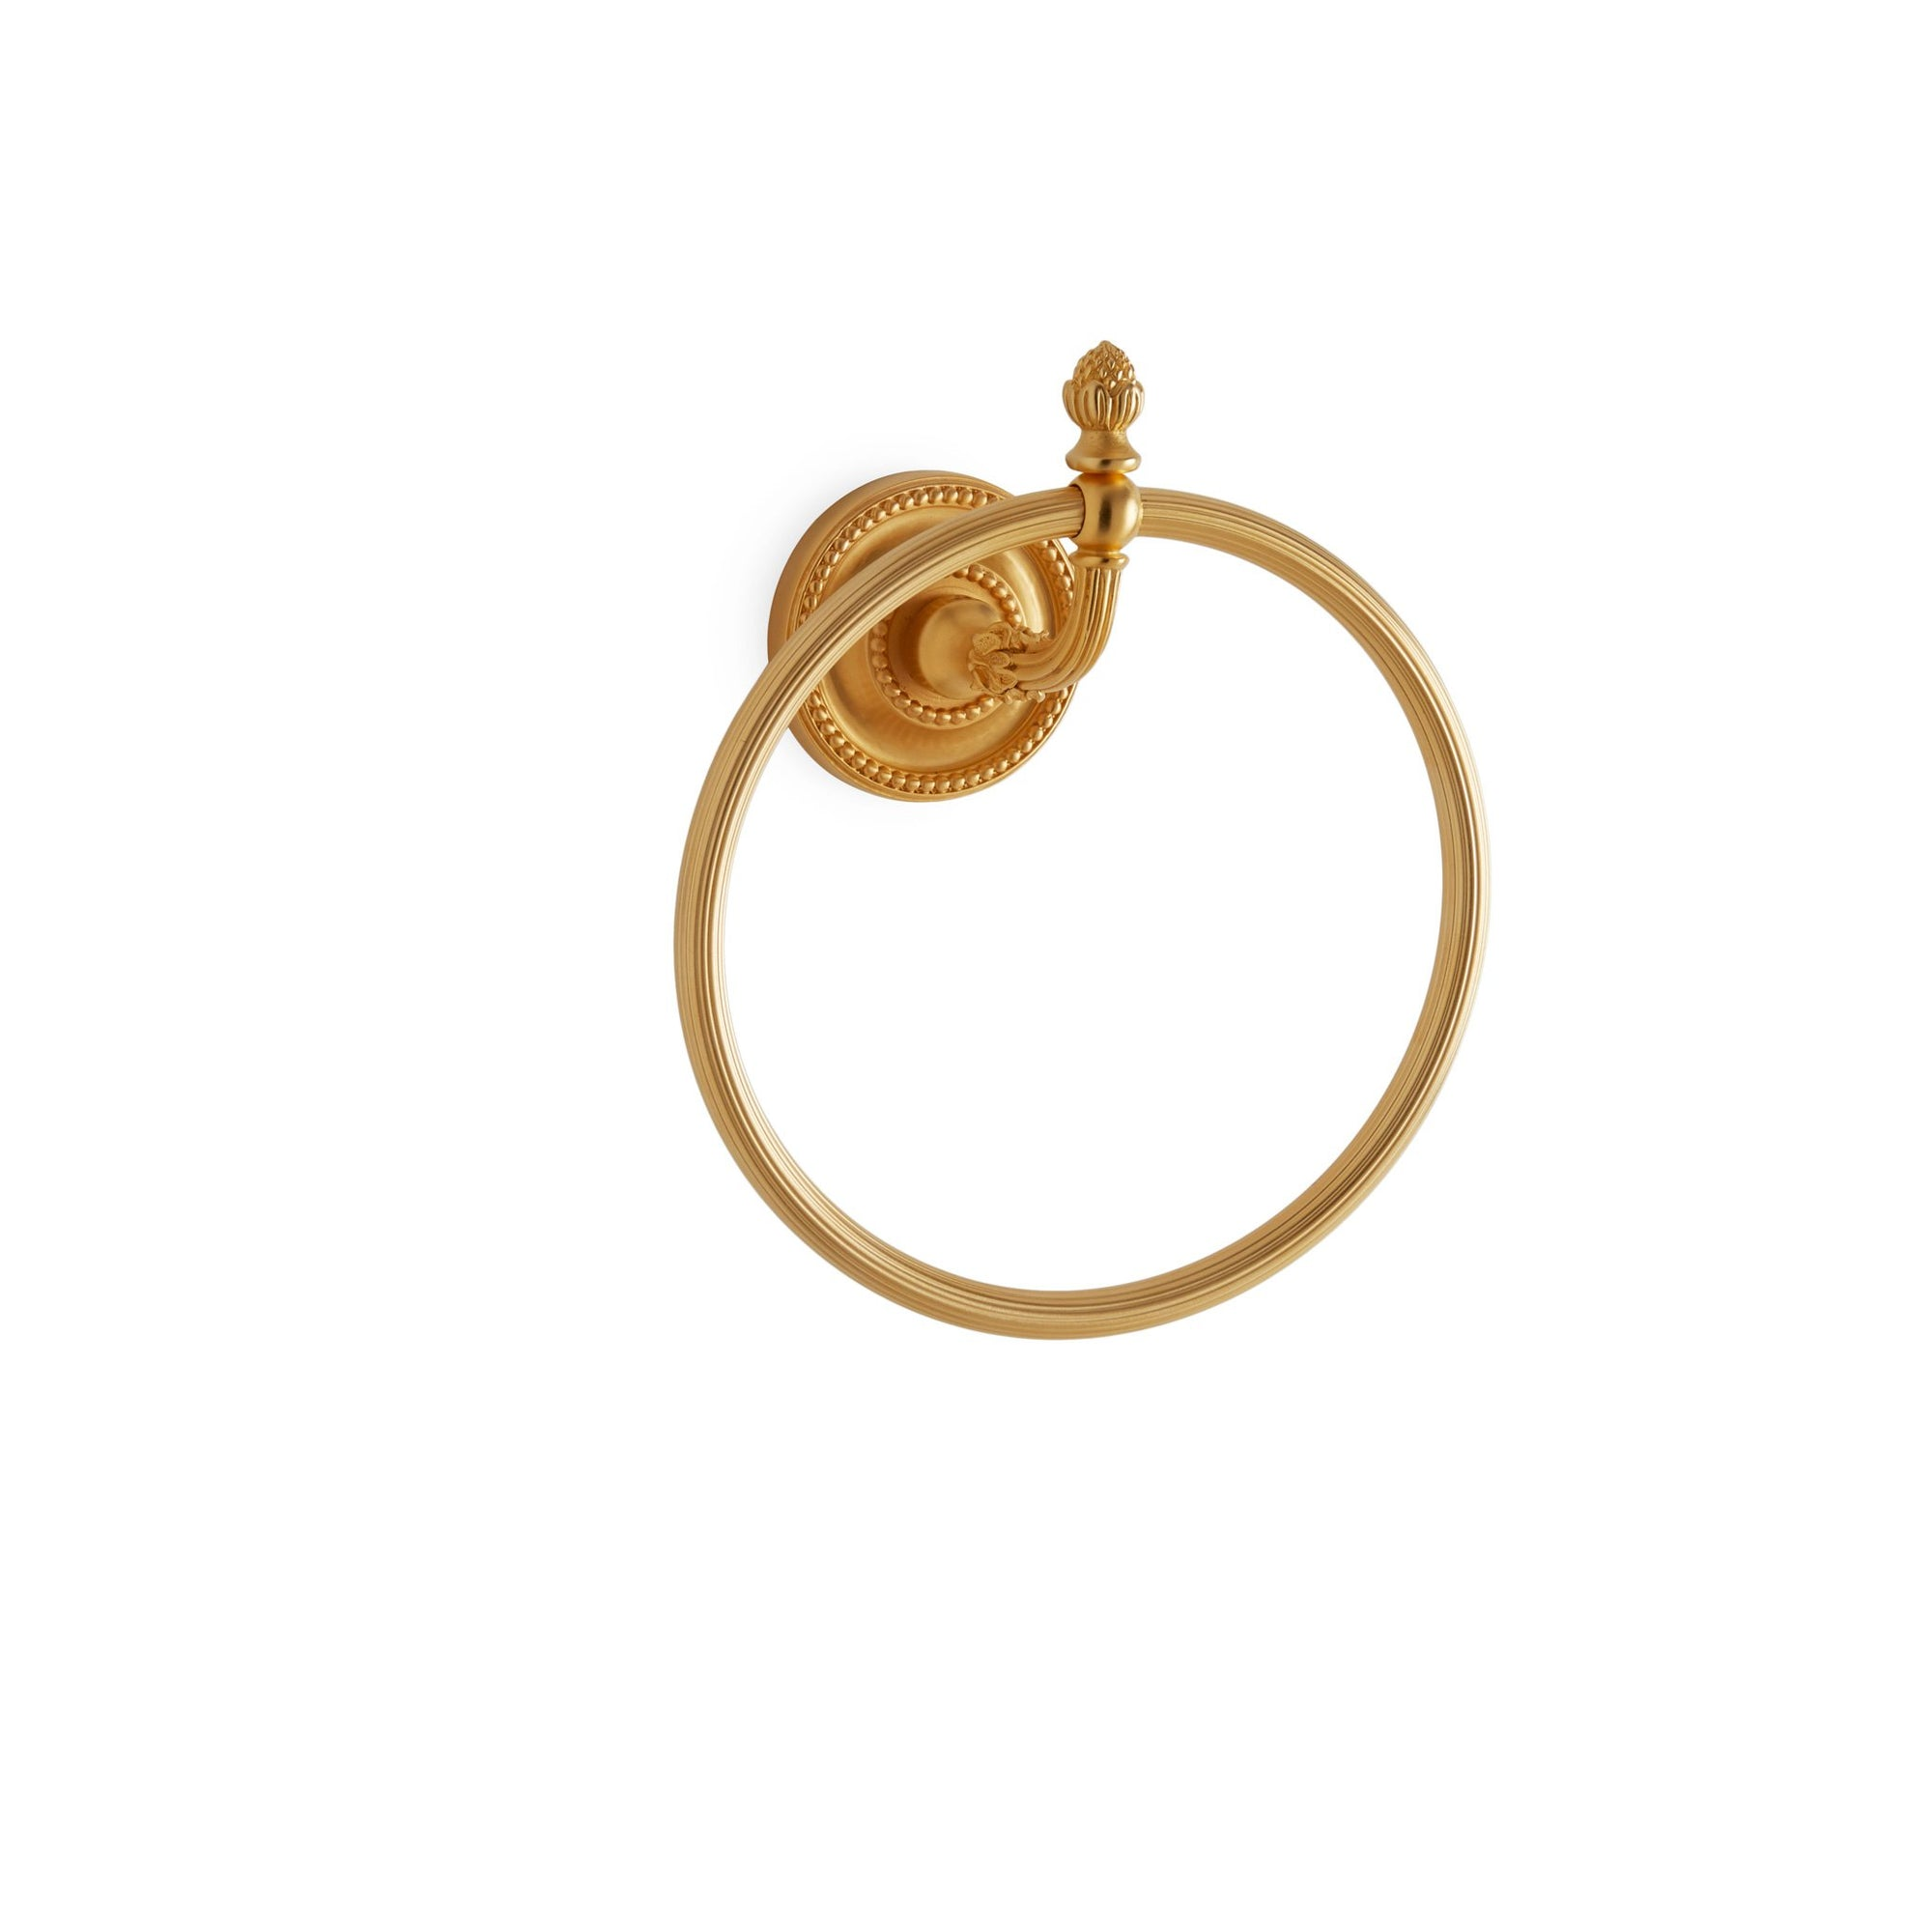 3415-GP Sherle Wagner International Classical Towel Ring in Gold Plate metal finish